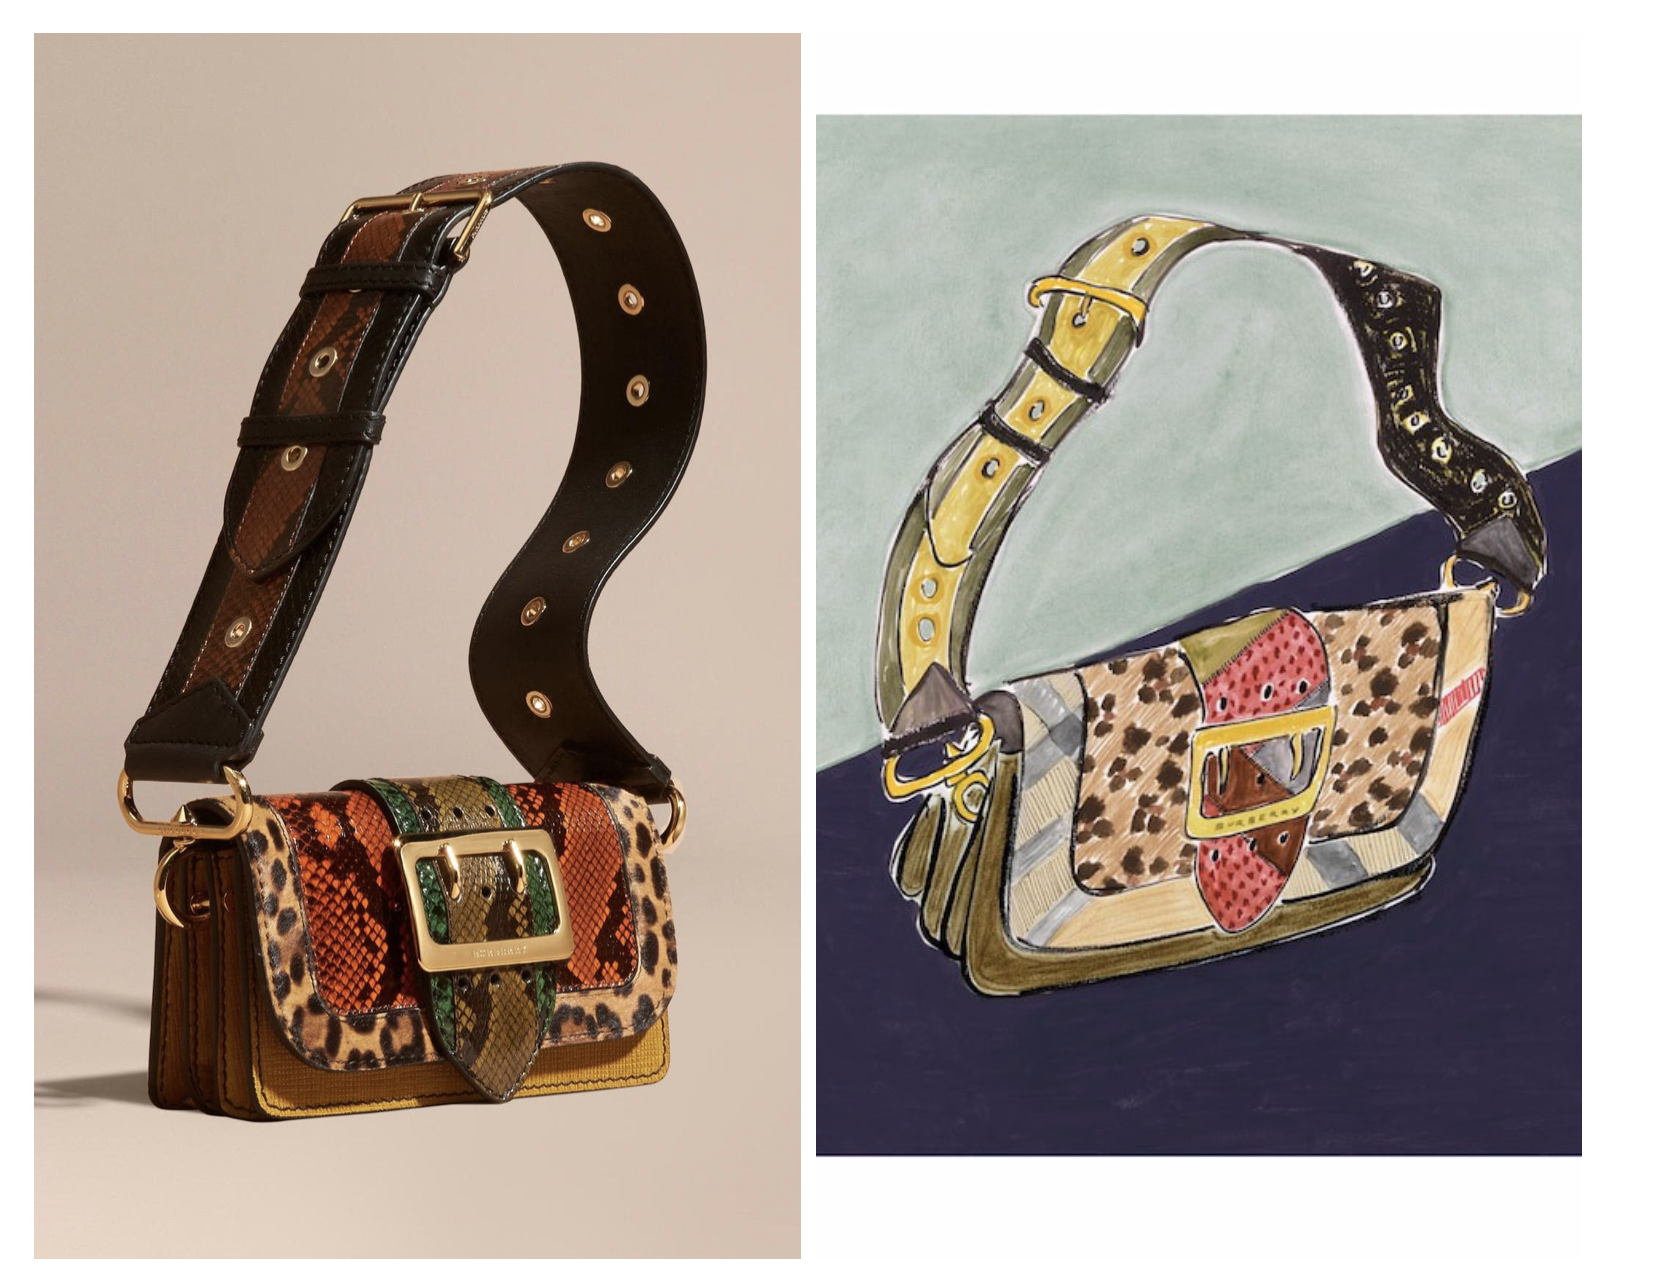 Burberry Patchwork bag Autumn/Winter2016 and Illustration of The Patchwork Bag